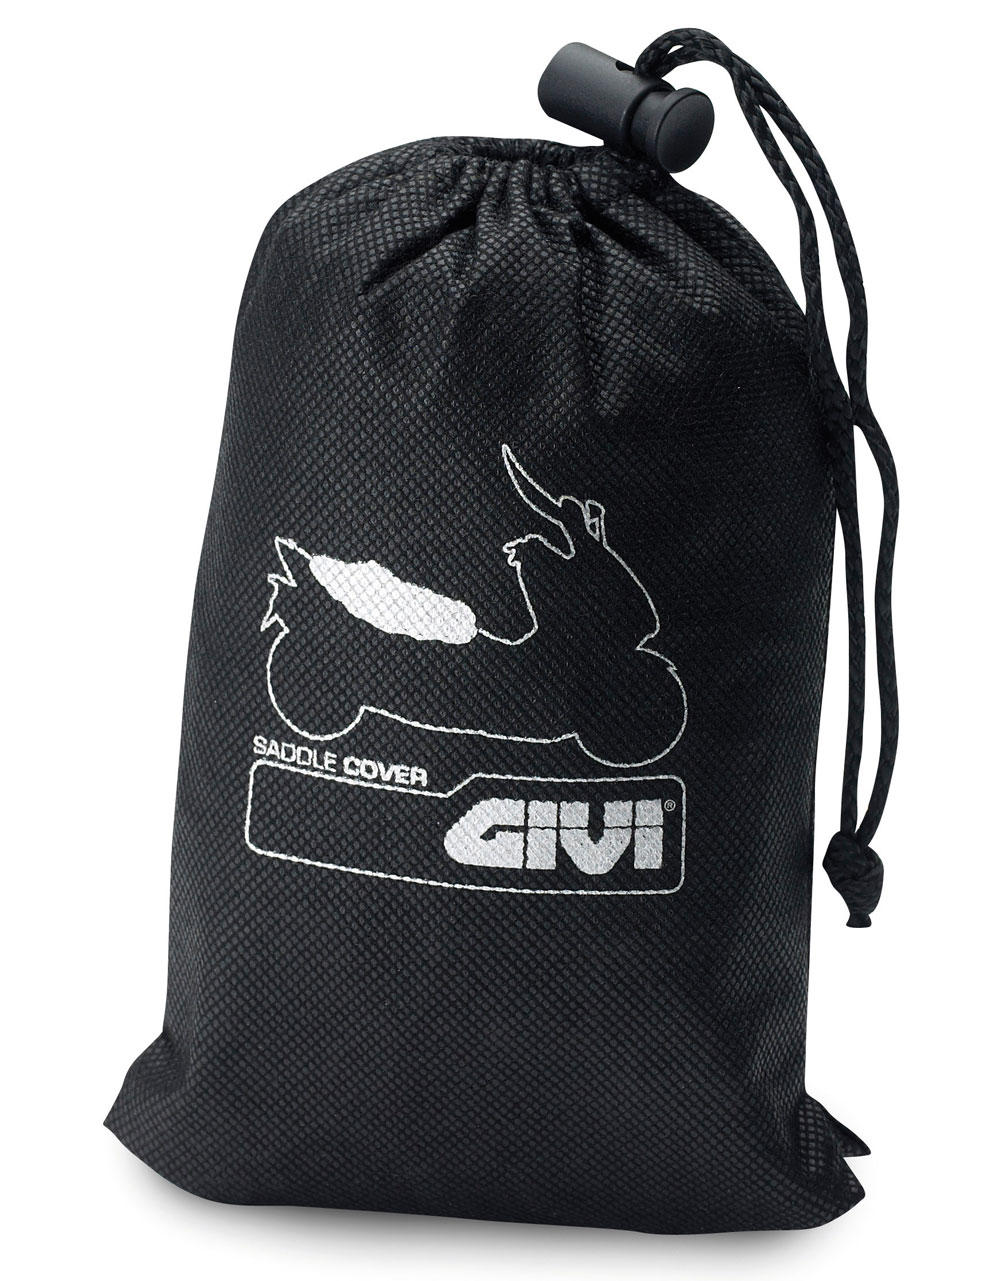 Outstanding Givi Motorcycle Scooter Universal Waterproof Seat Cover Machost Co Dining Chair Design Ideas Machostcouk